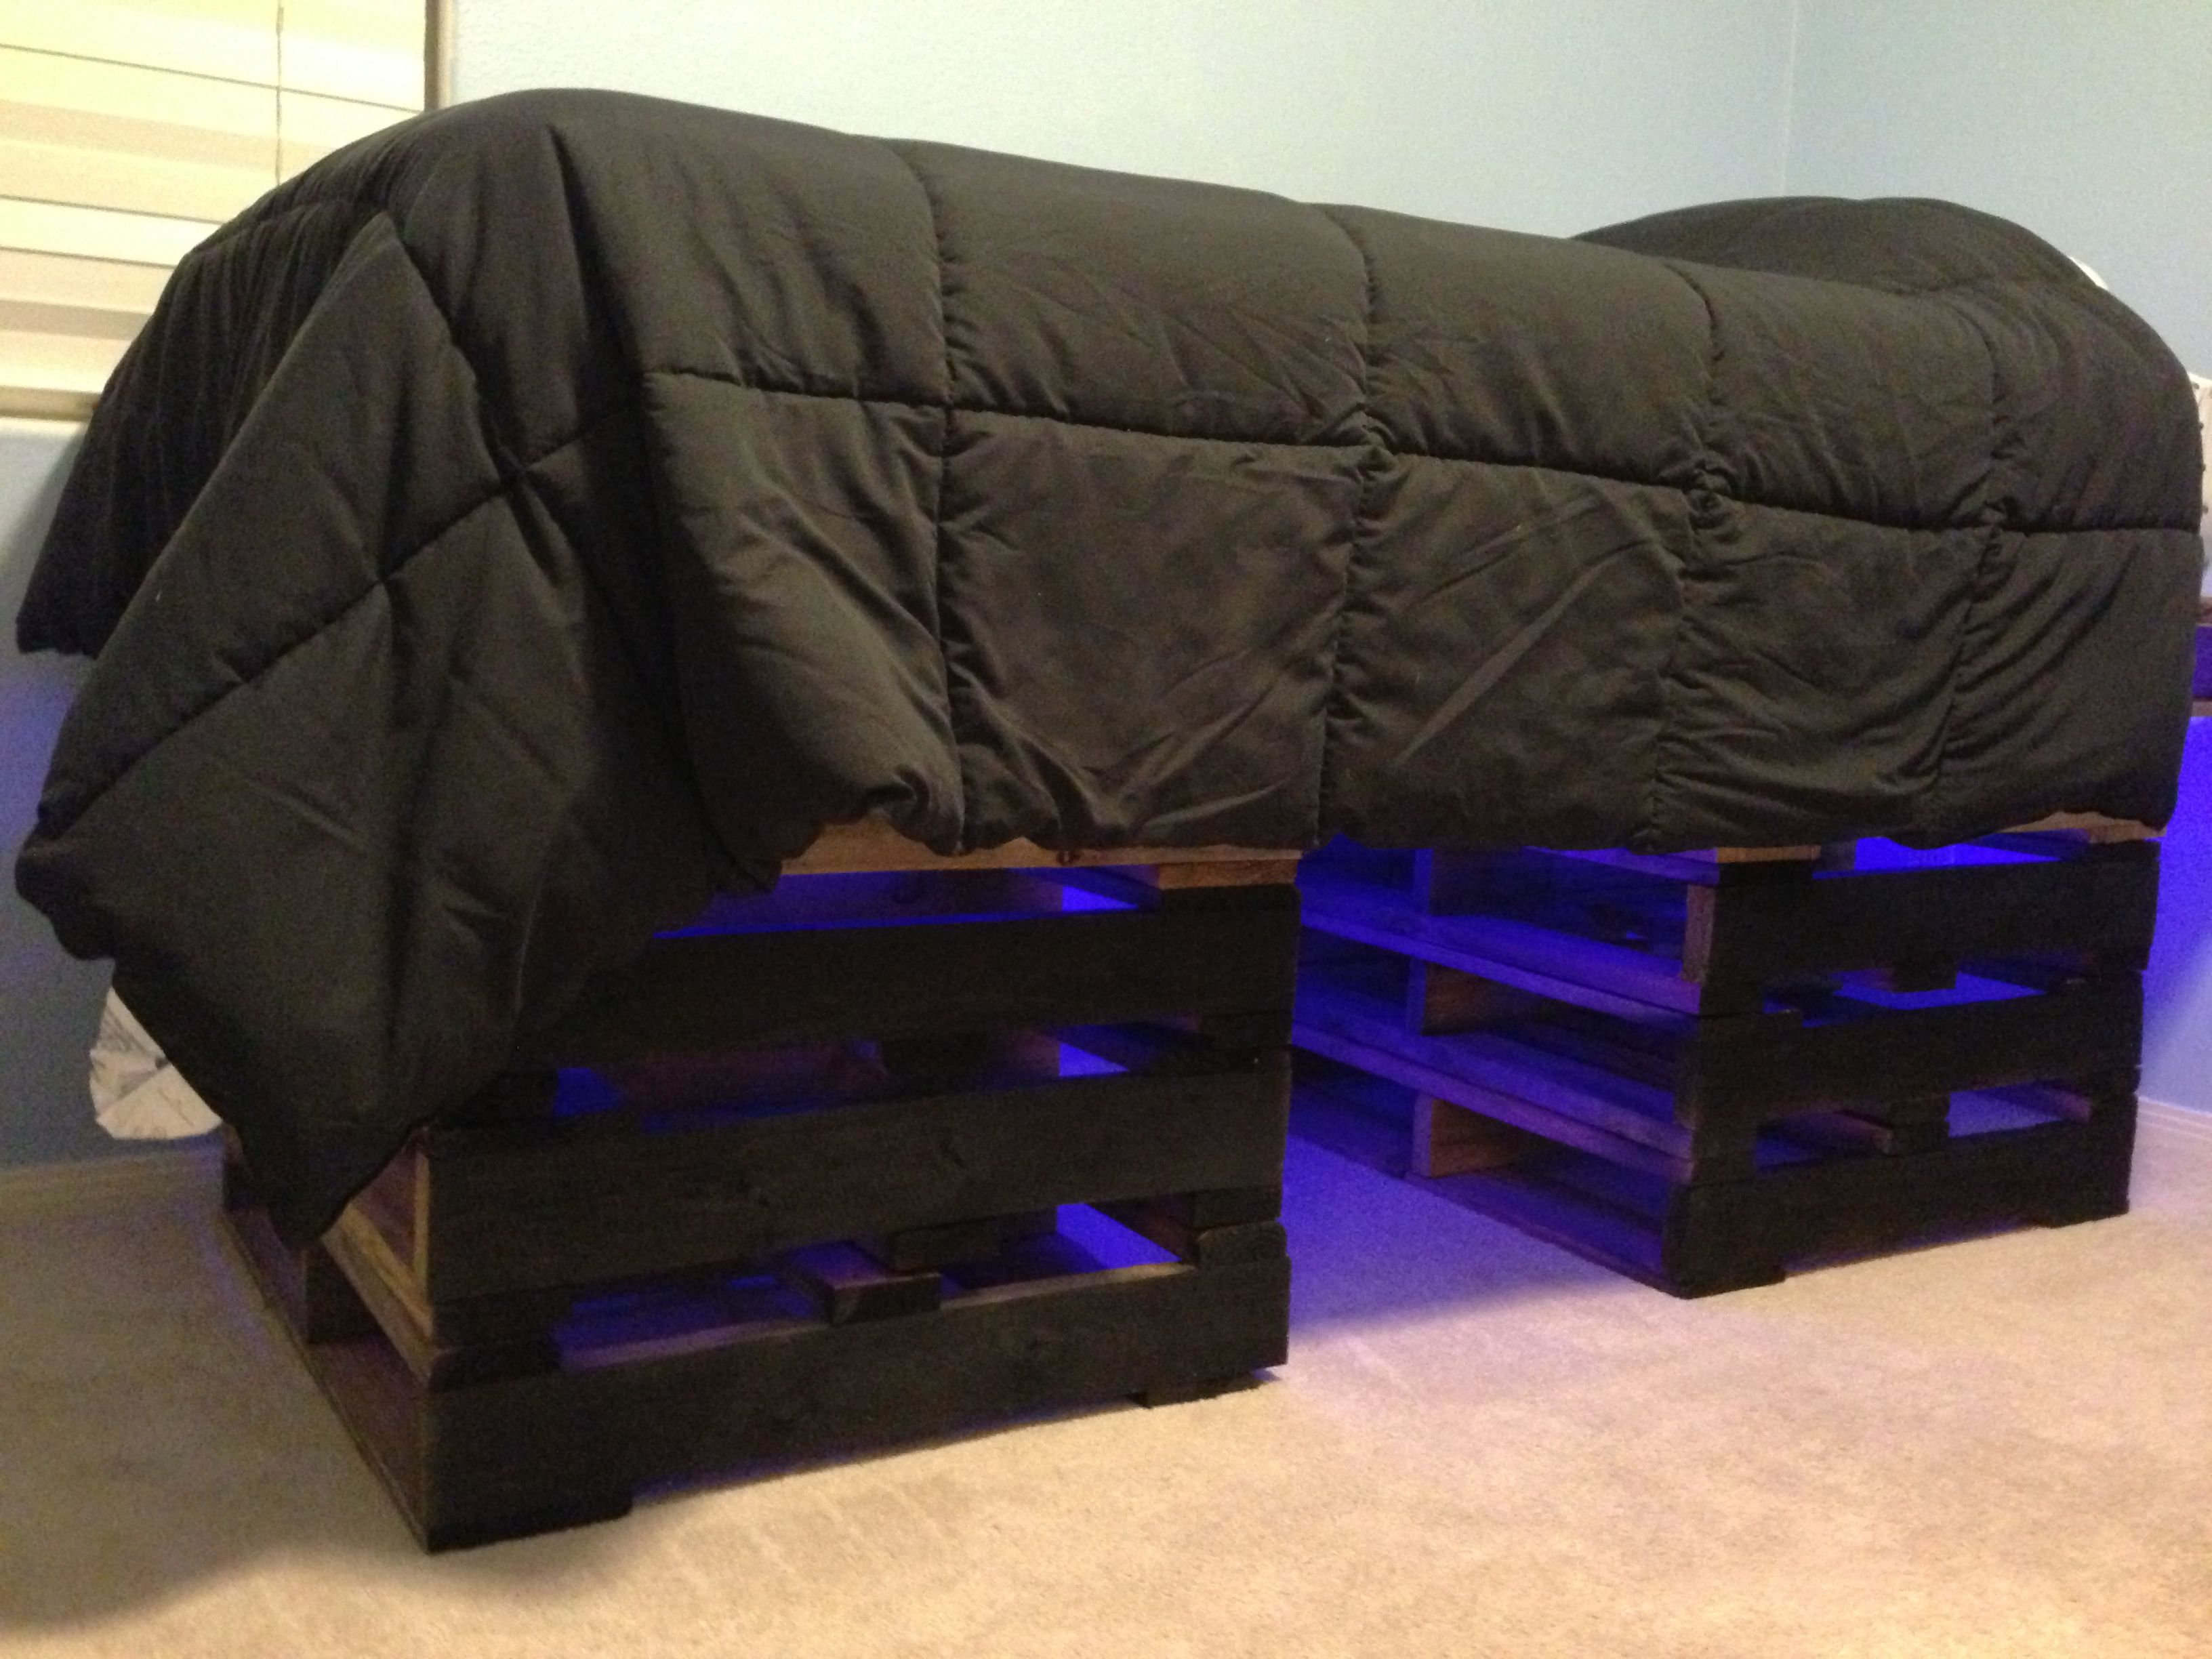 Beds For 13 Year Olds pallet bed i made for my 13-year-old. 9 pallets (8 3x3 and 1 3x6.5